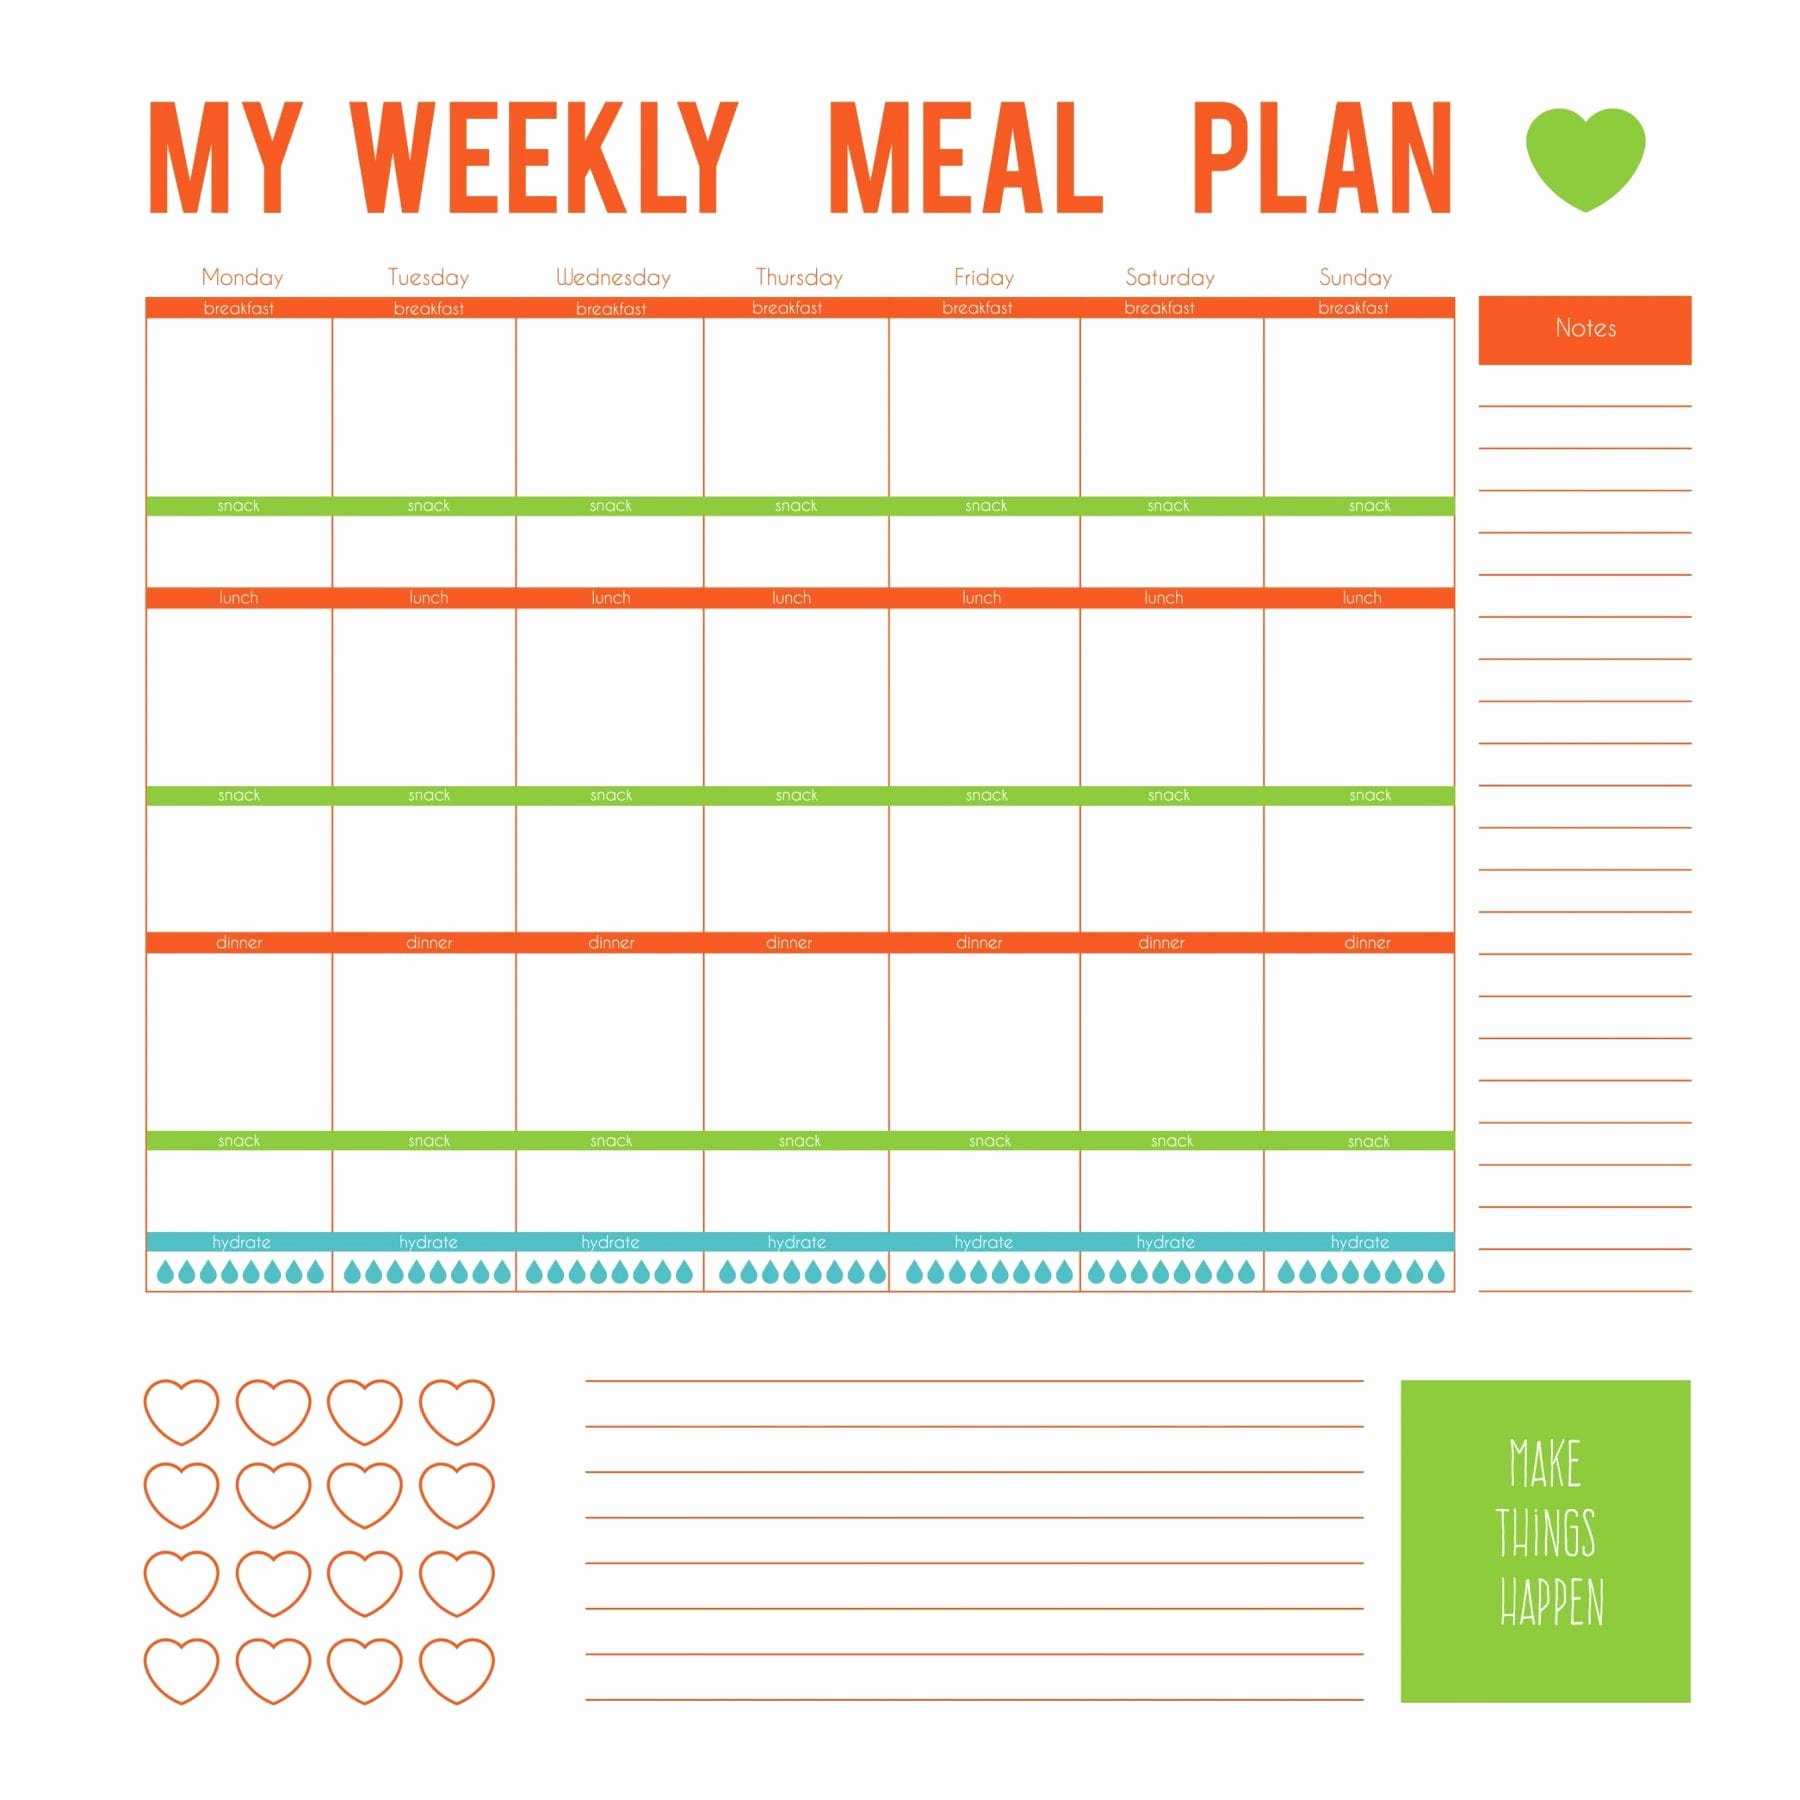 Create A Meal Plan Template Beautiful 3 Simple Ways to Make Eating Healthy Easier